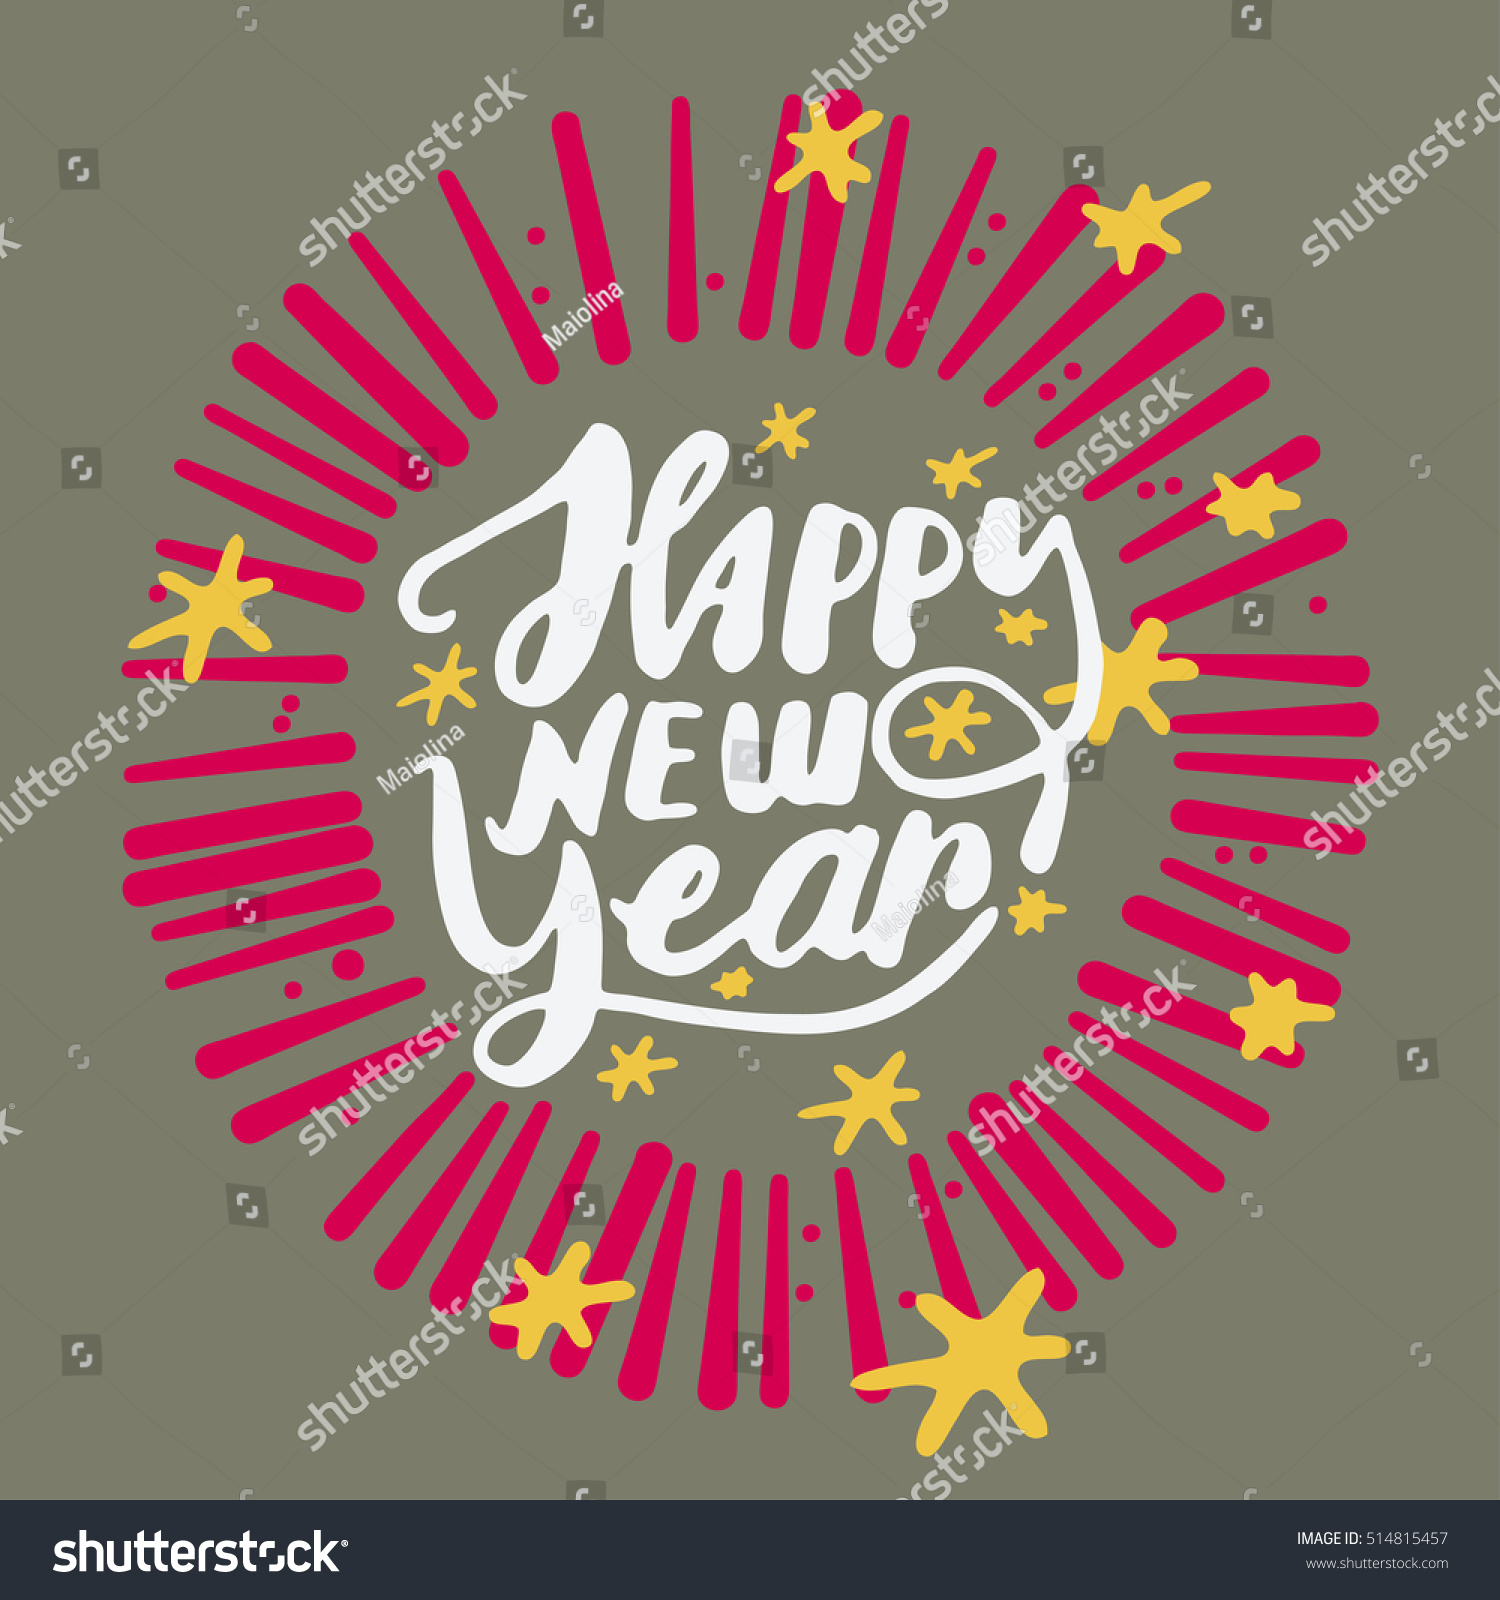 Happy new year greeting card vector stock vector 514815457 happy new year greeting card vector illustration green background yellow starts and red kristyandbryce Choice Image